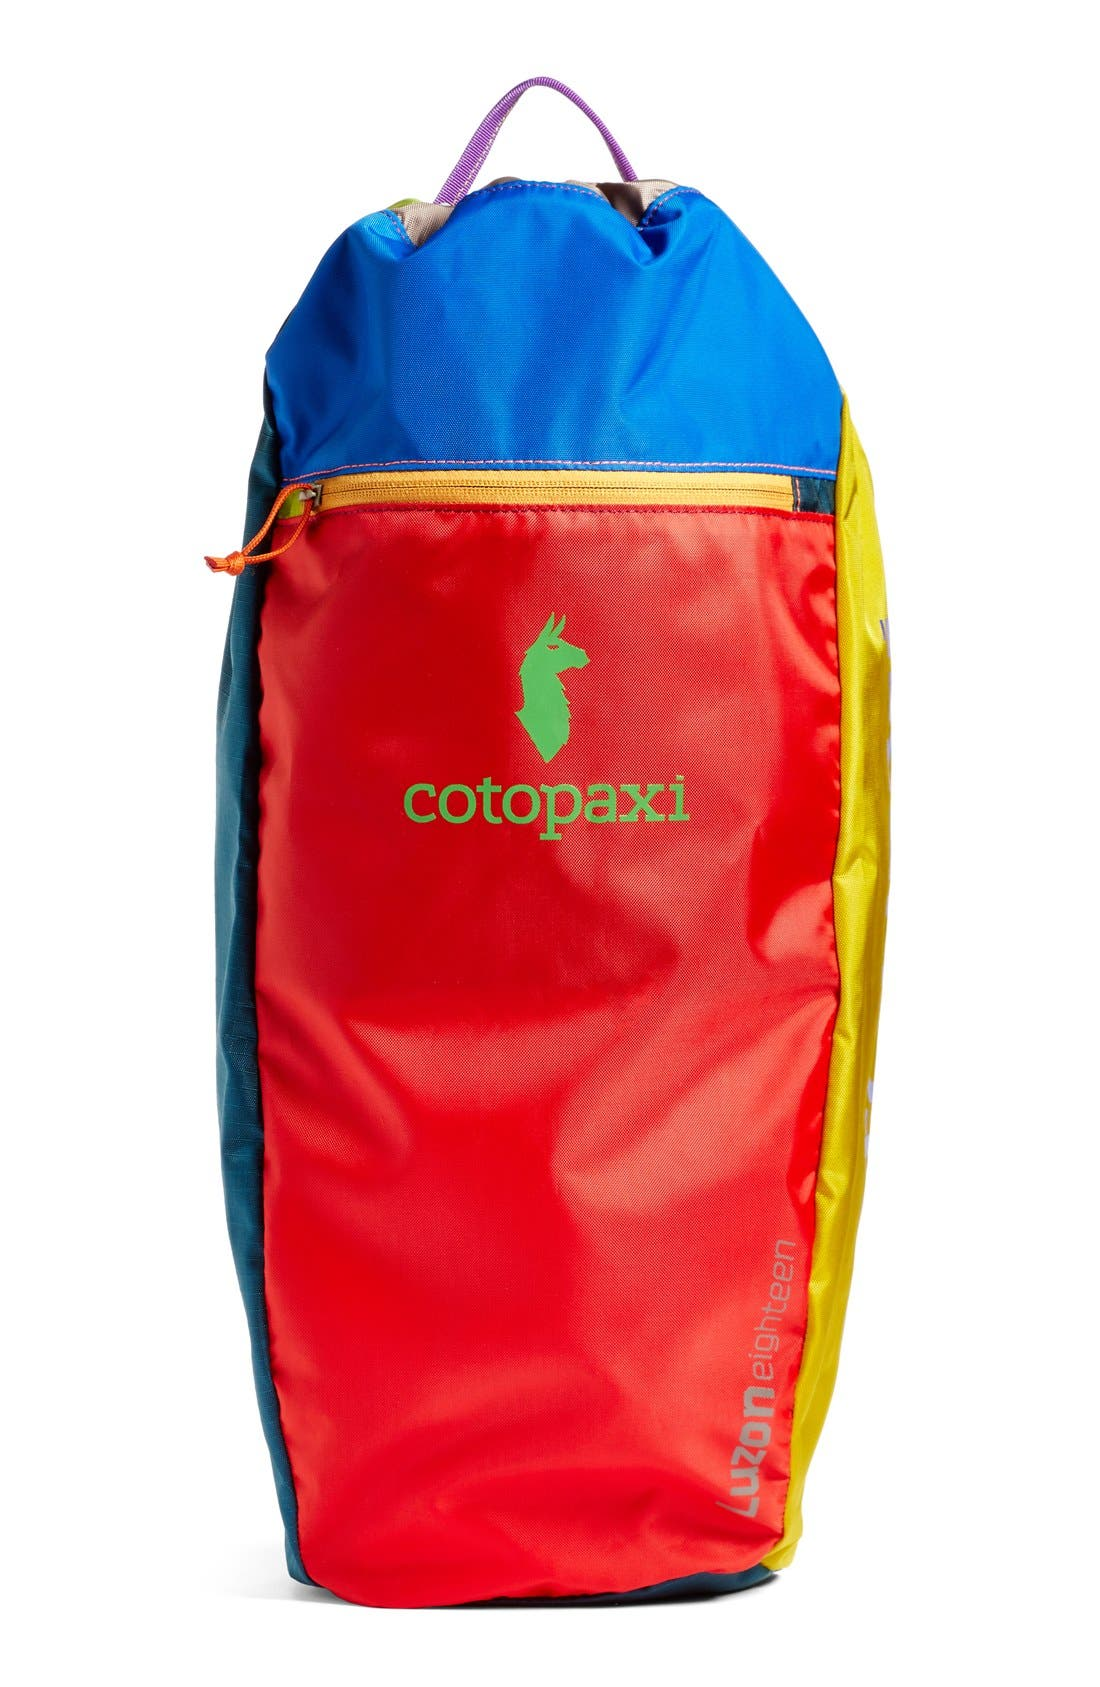 Luzon Del Dia One of a Kind Ripstop Nylon Daypack,                             Main thumbnail 1, color,